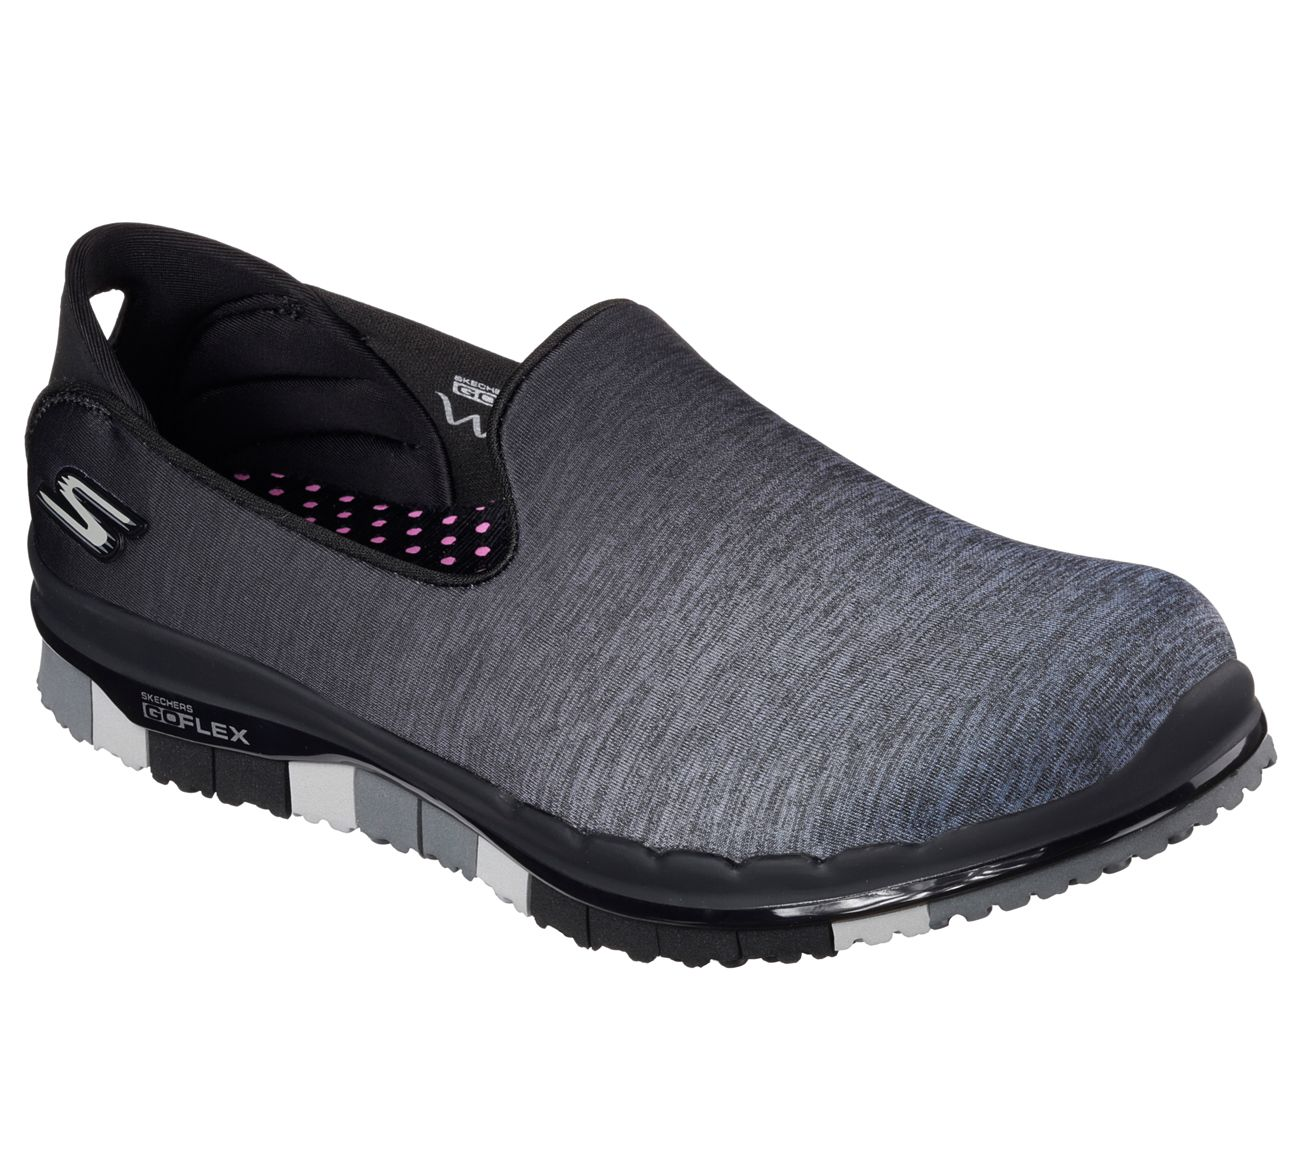 6334aba48 The+Skechers+GO+FLEX +Walk™+-+Muse+is+the+shoe+that+moves+with+you.++Knitted+upper+with+articulated